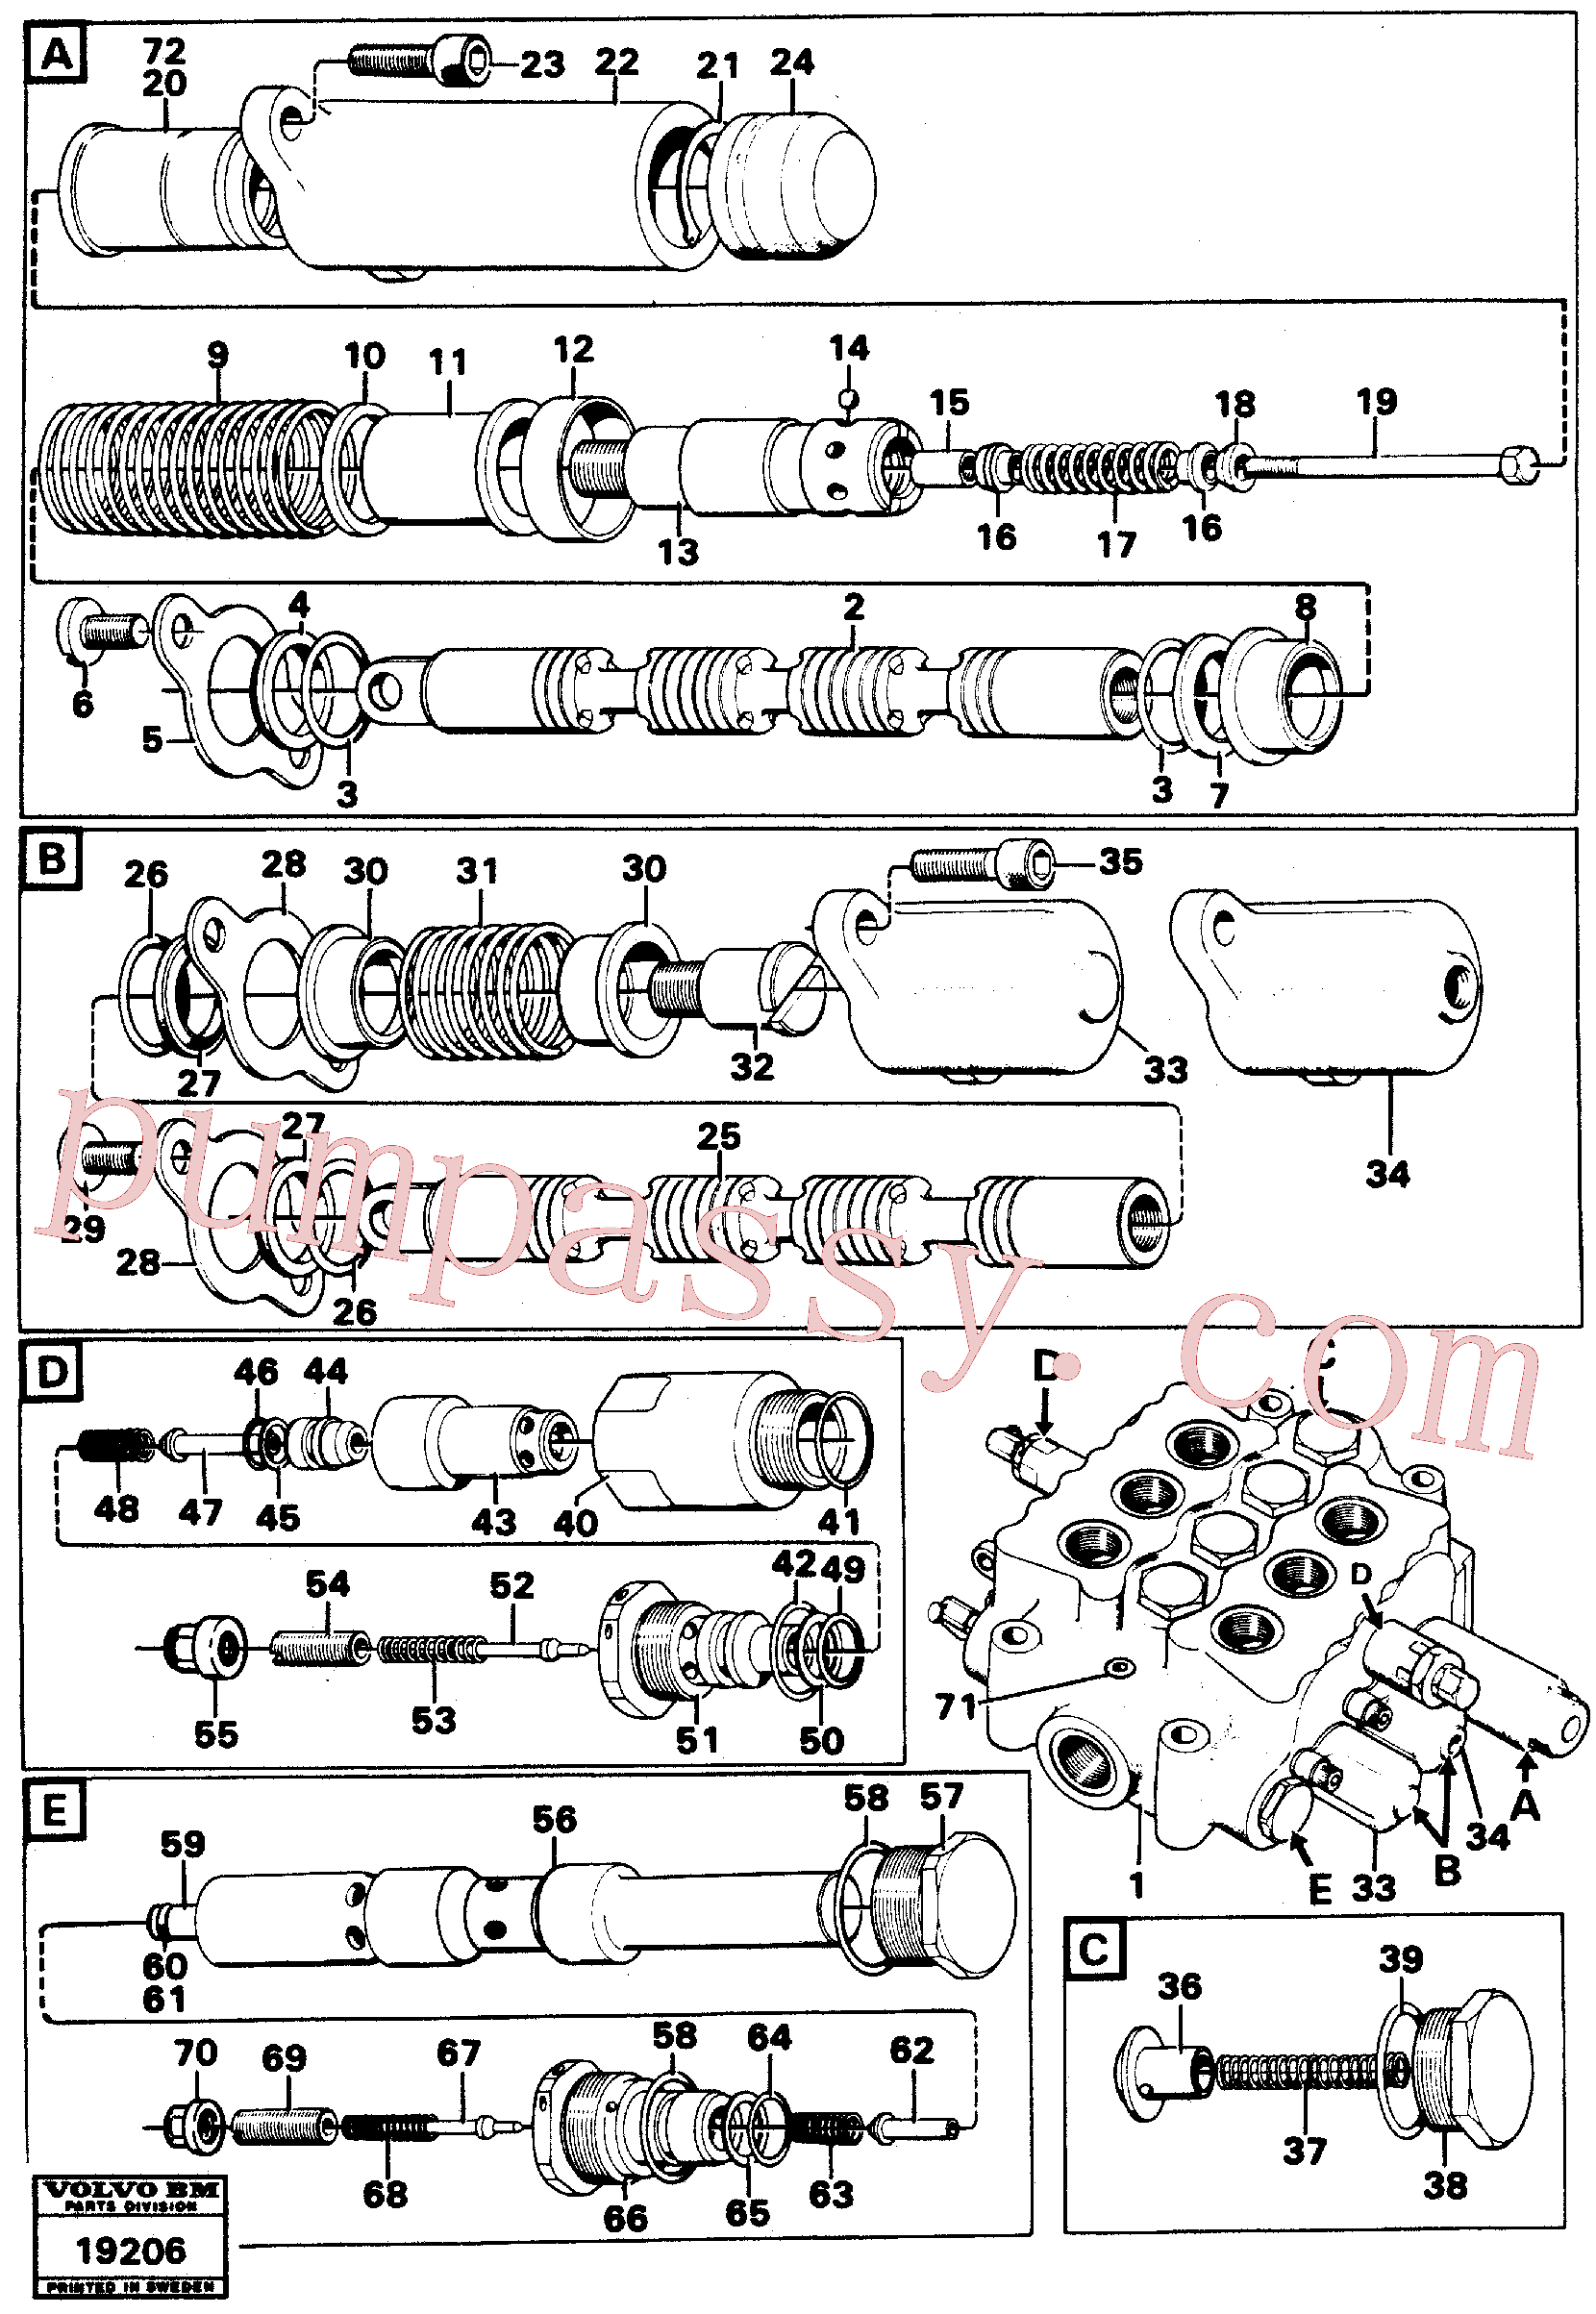 VOE956584 for Volvo Control valve(19206 assembly)